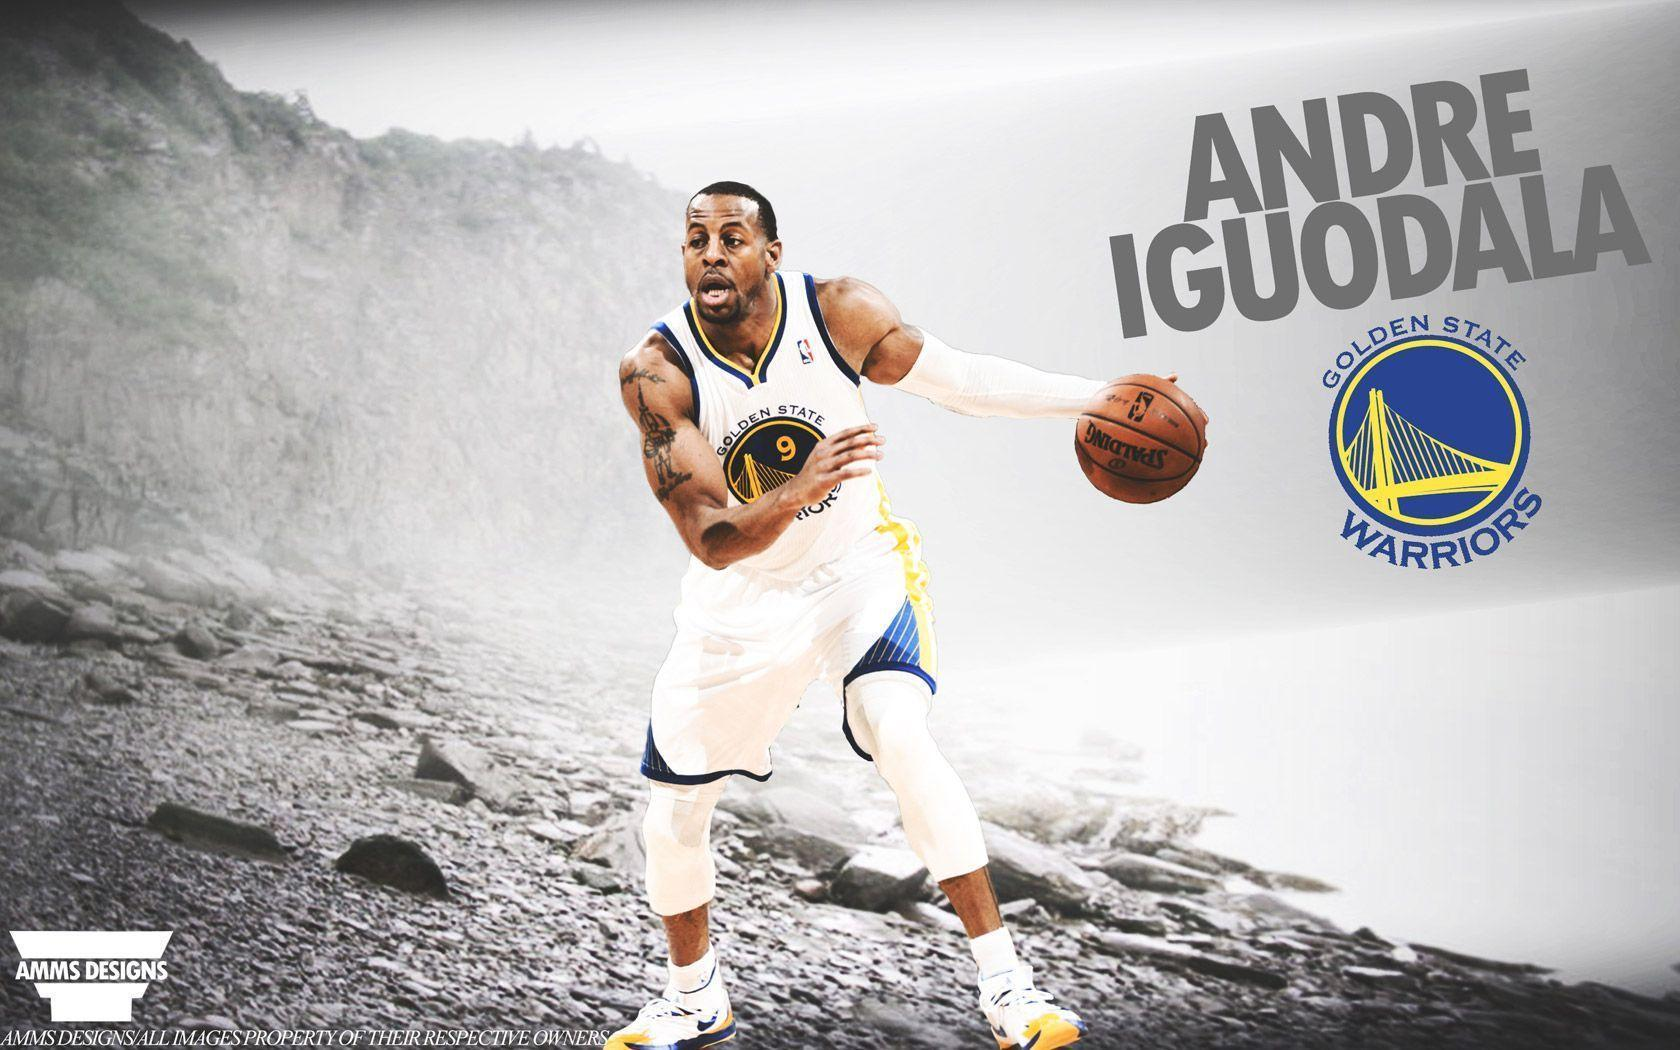 Denver Nuggets to buy Andre Iguodala from Memphis